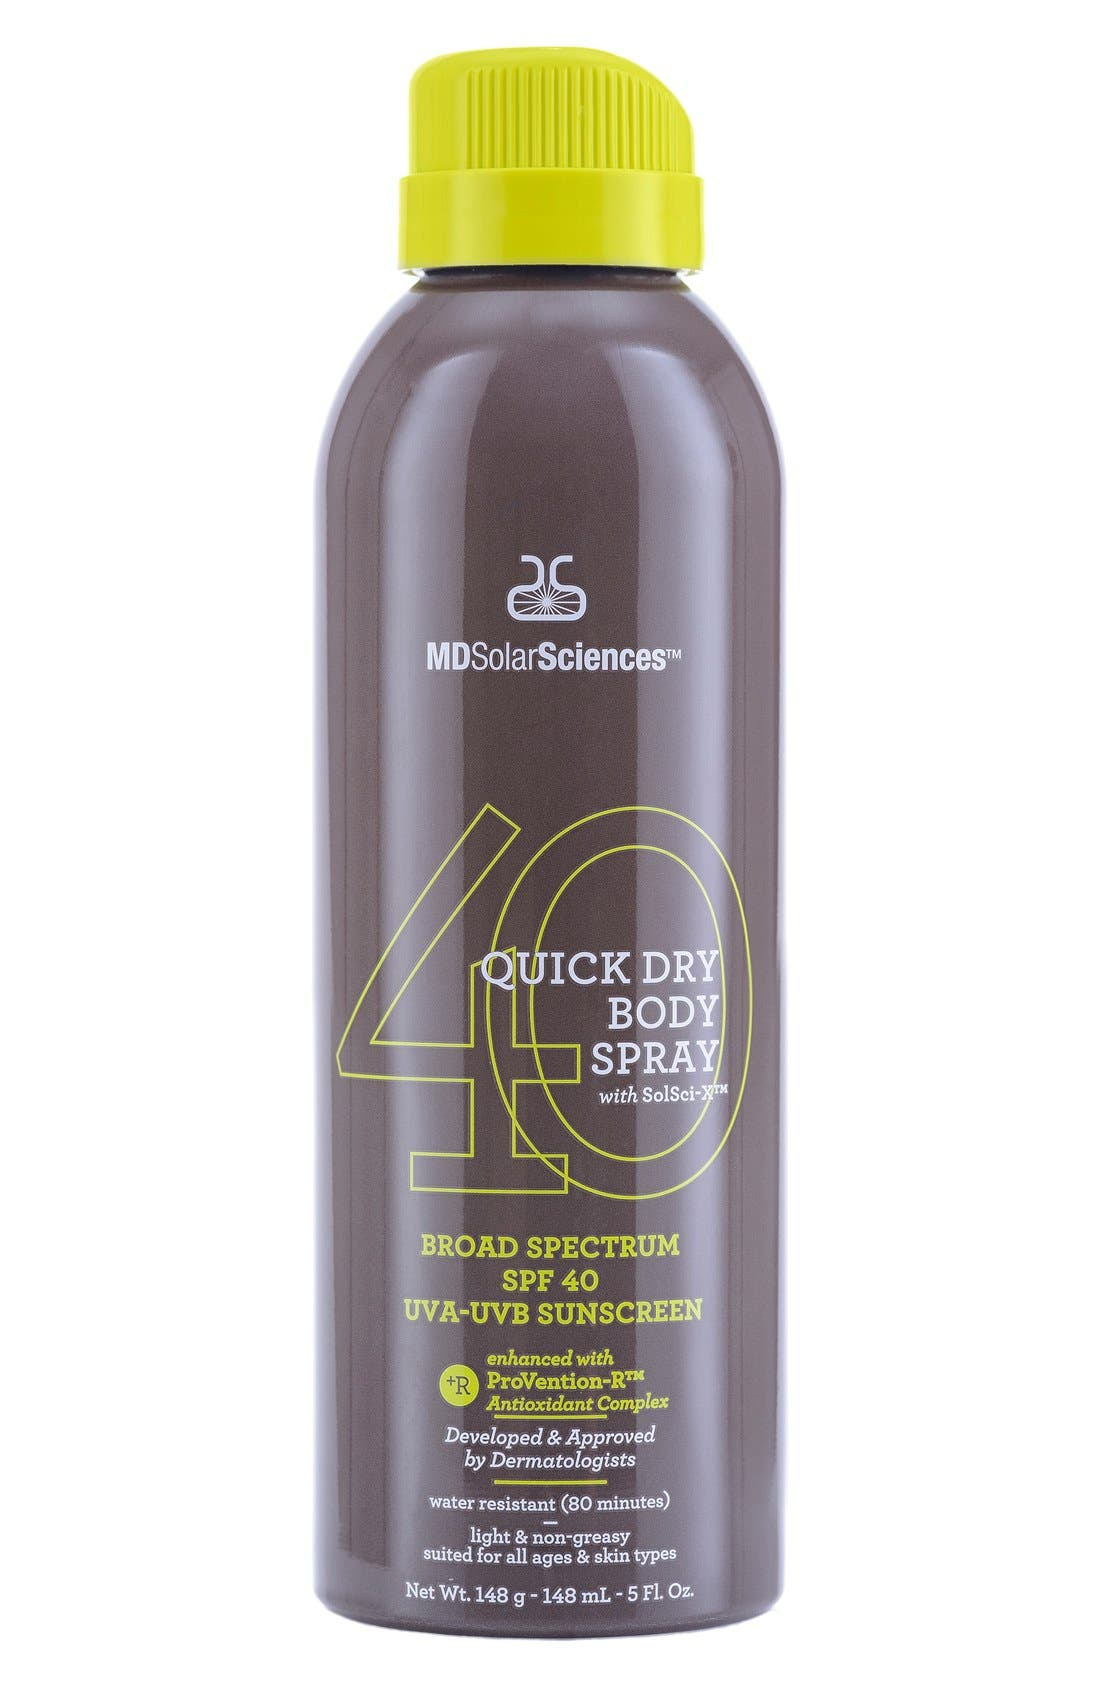 Quick Dry Body Spray Broad Spectrum SPF 40 Sunscreen,                             Main thumbnail 1, color,                             000